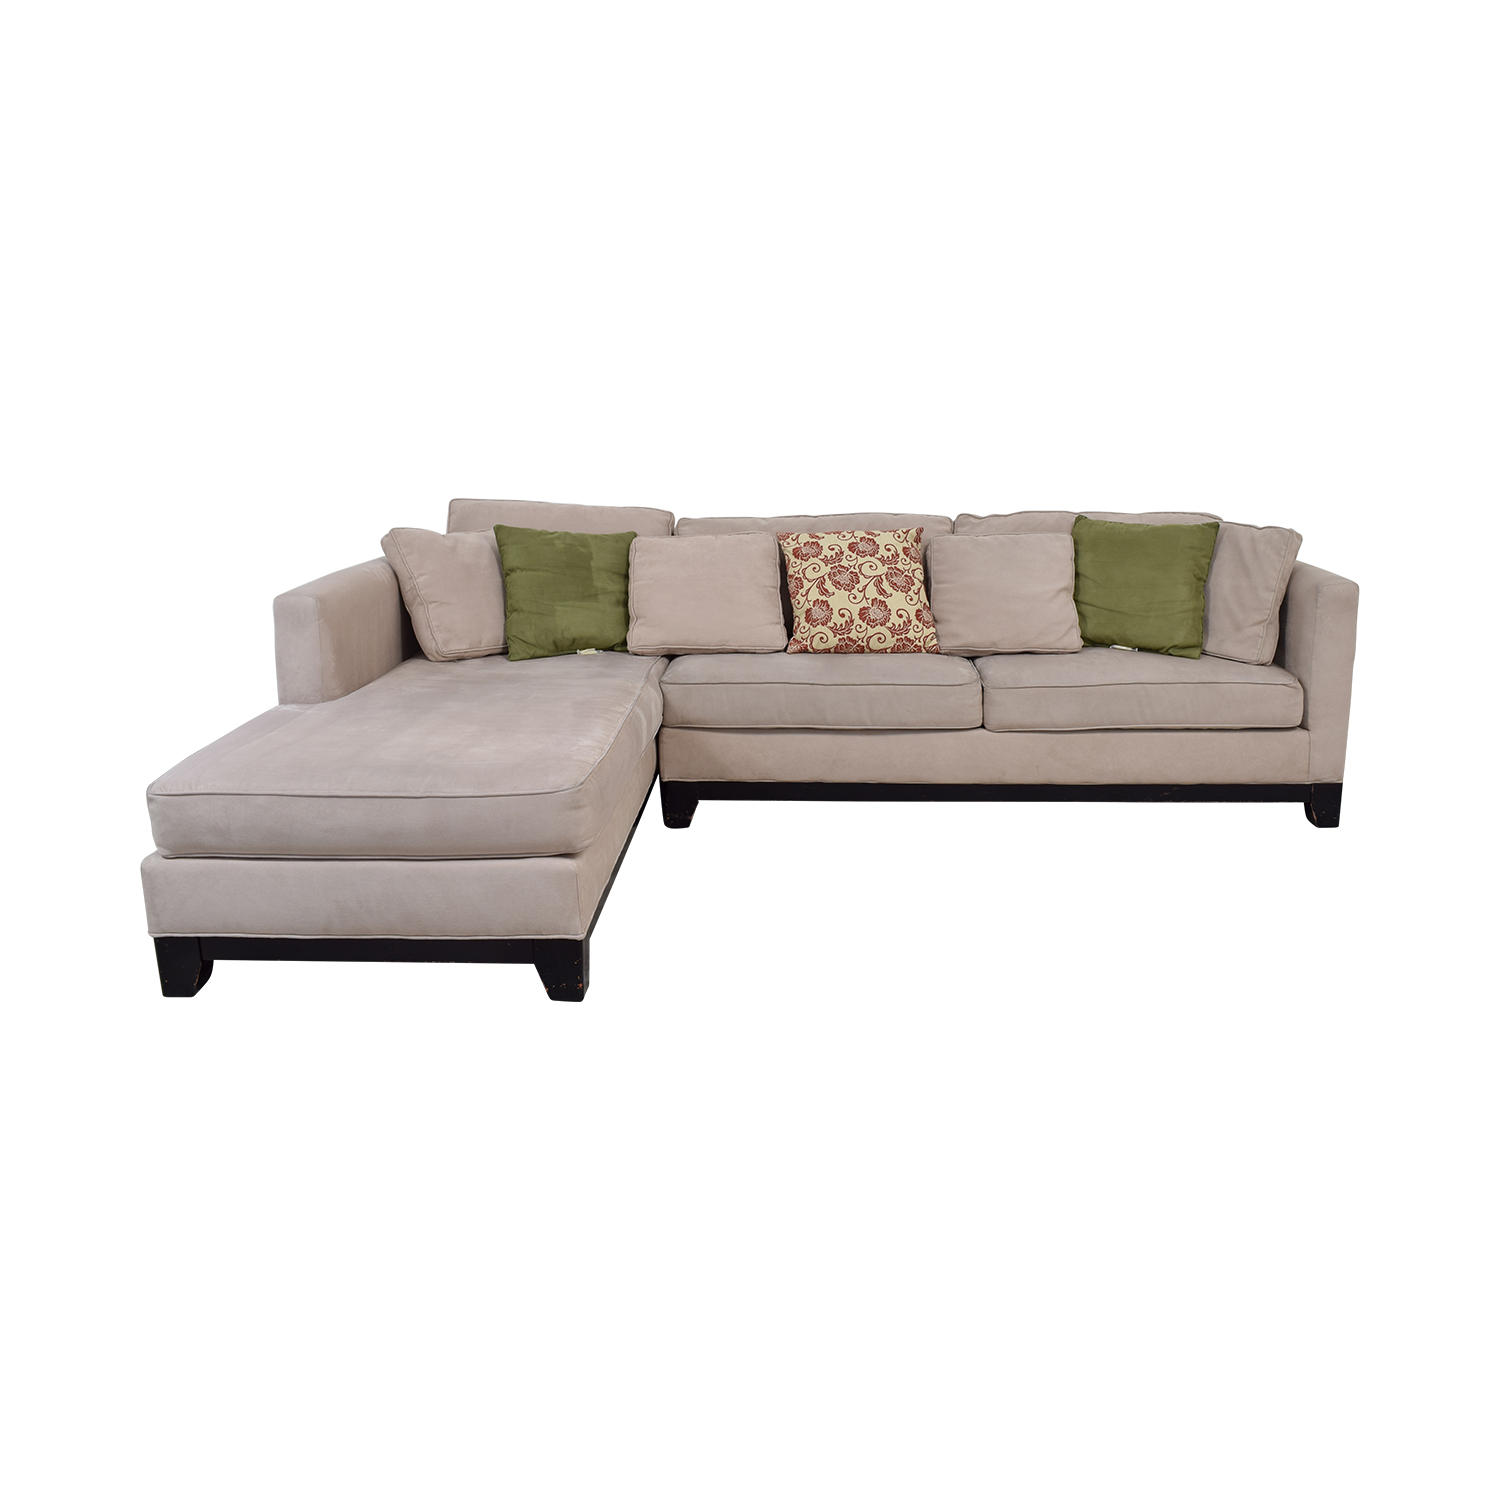 Peachy 76 Off Macys Macys Microfiber Taupe Sectional Sofa Sofas Short Links Chair Design For Home Short Linksinfo